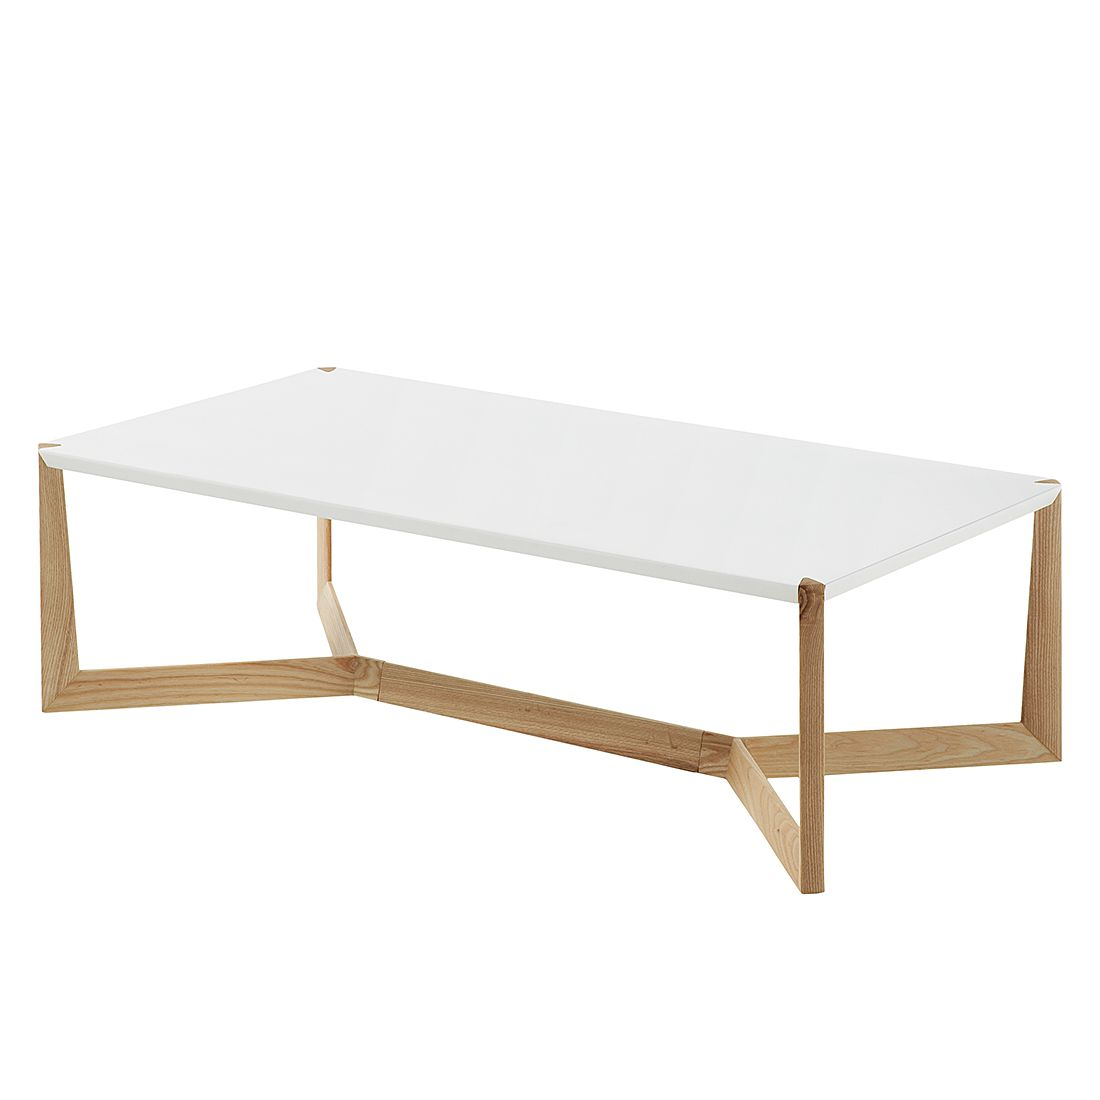 Table basse Donore